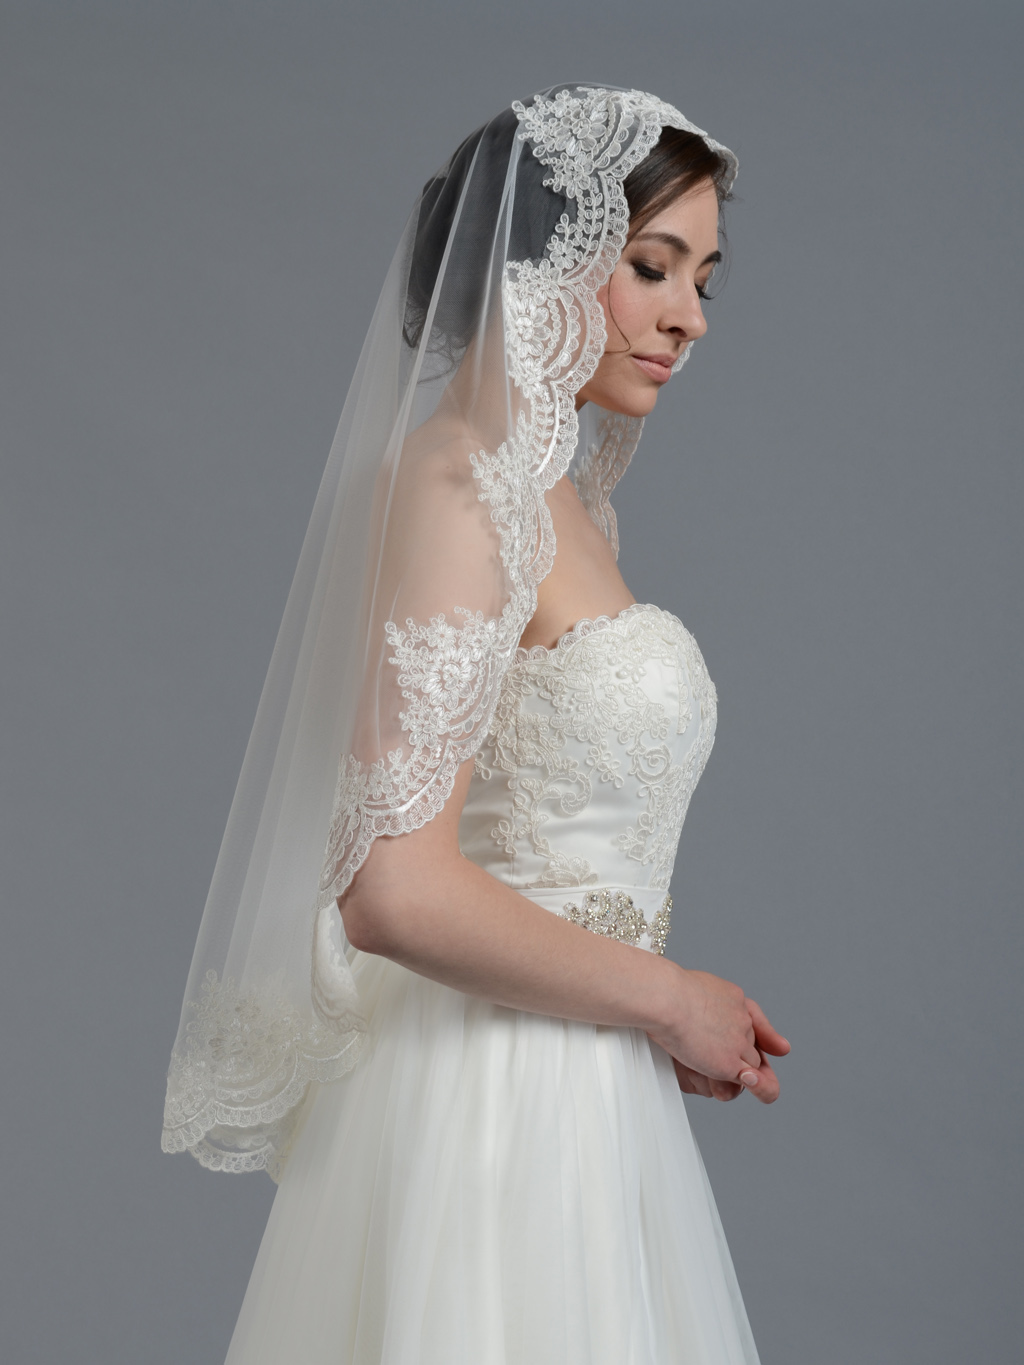 Mantilla bridal wedding veil elbowfingertip V wedding veils